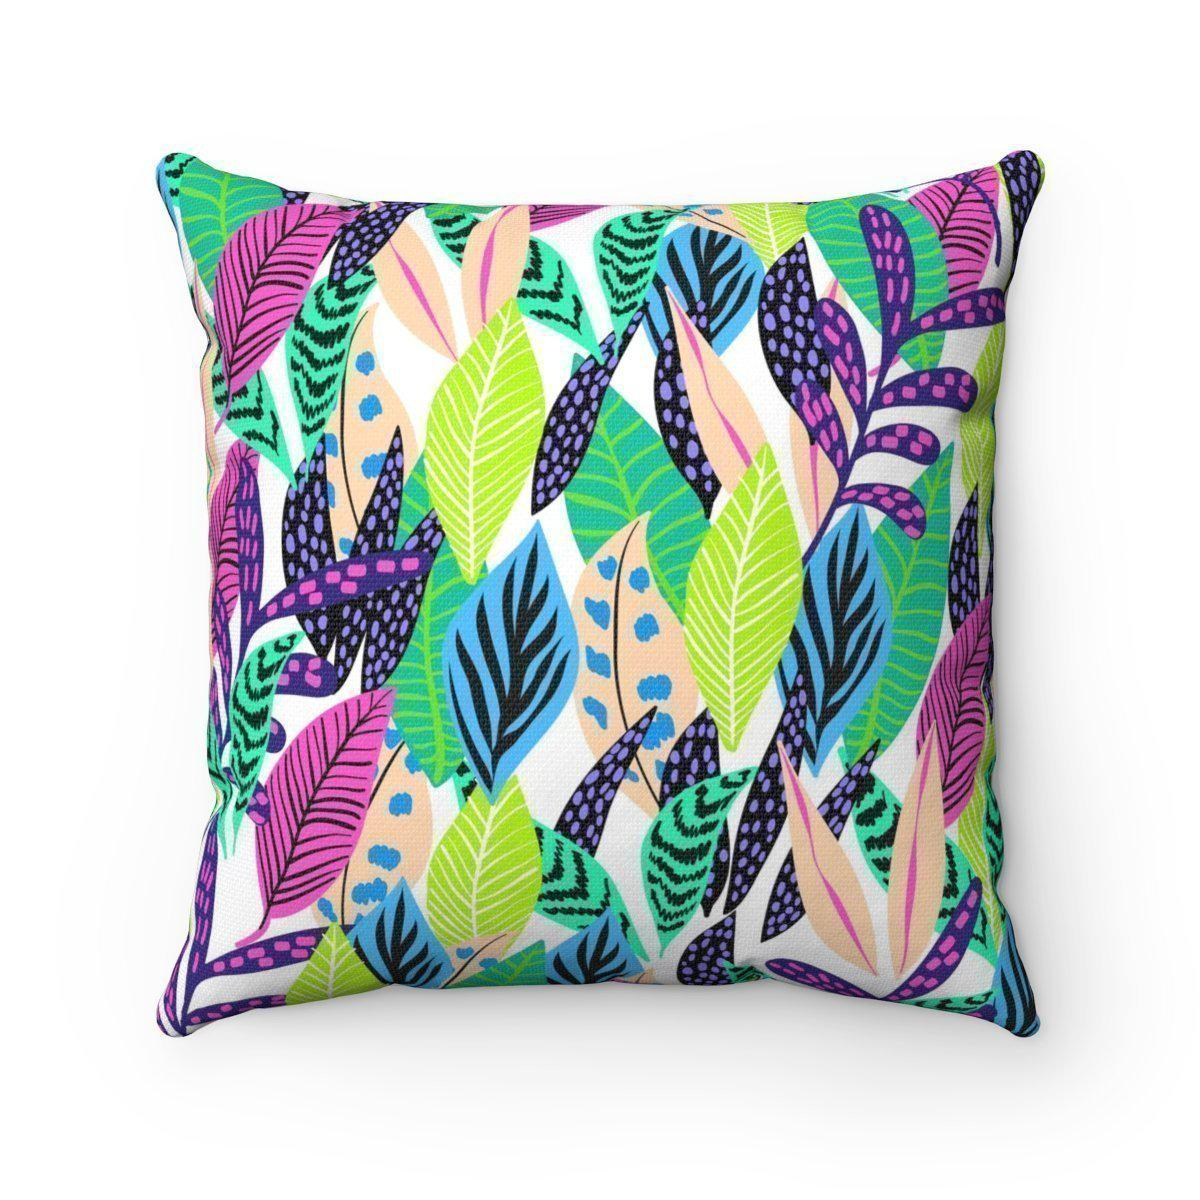 Modern tropical leaves jungle decorative cushion cover-Home Decor - Decorative Accents - Pillows & Throws - Decorative Pillows-Maison d'Elite-16x16-Très Elite